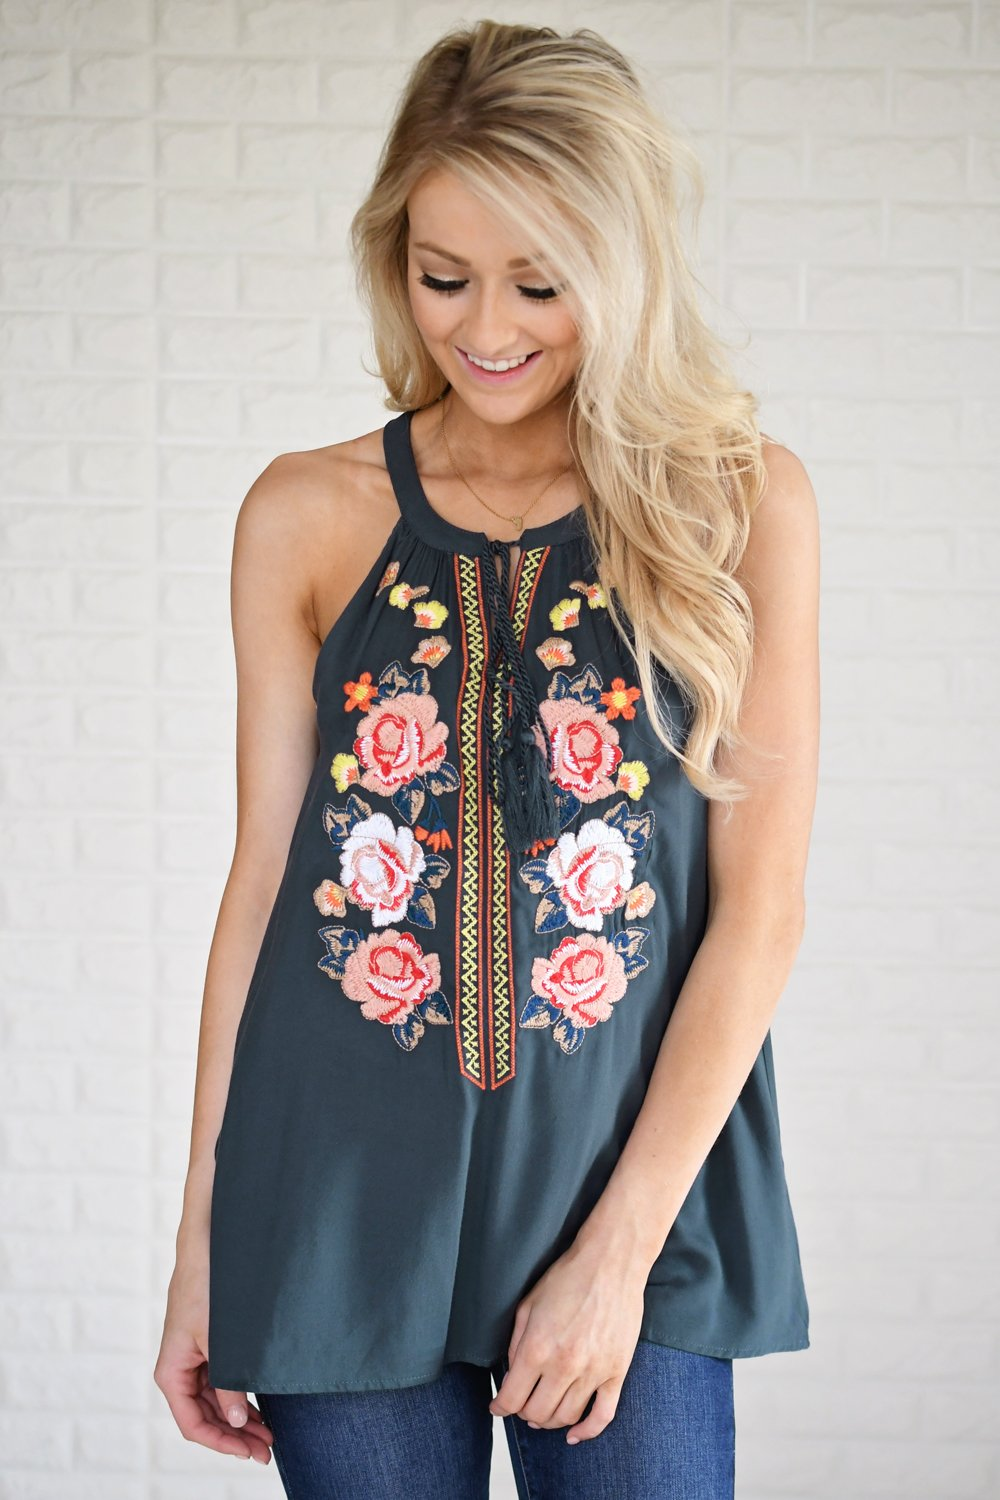 Floral My Heart Tank Top